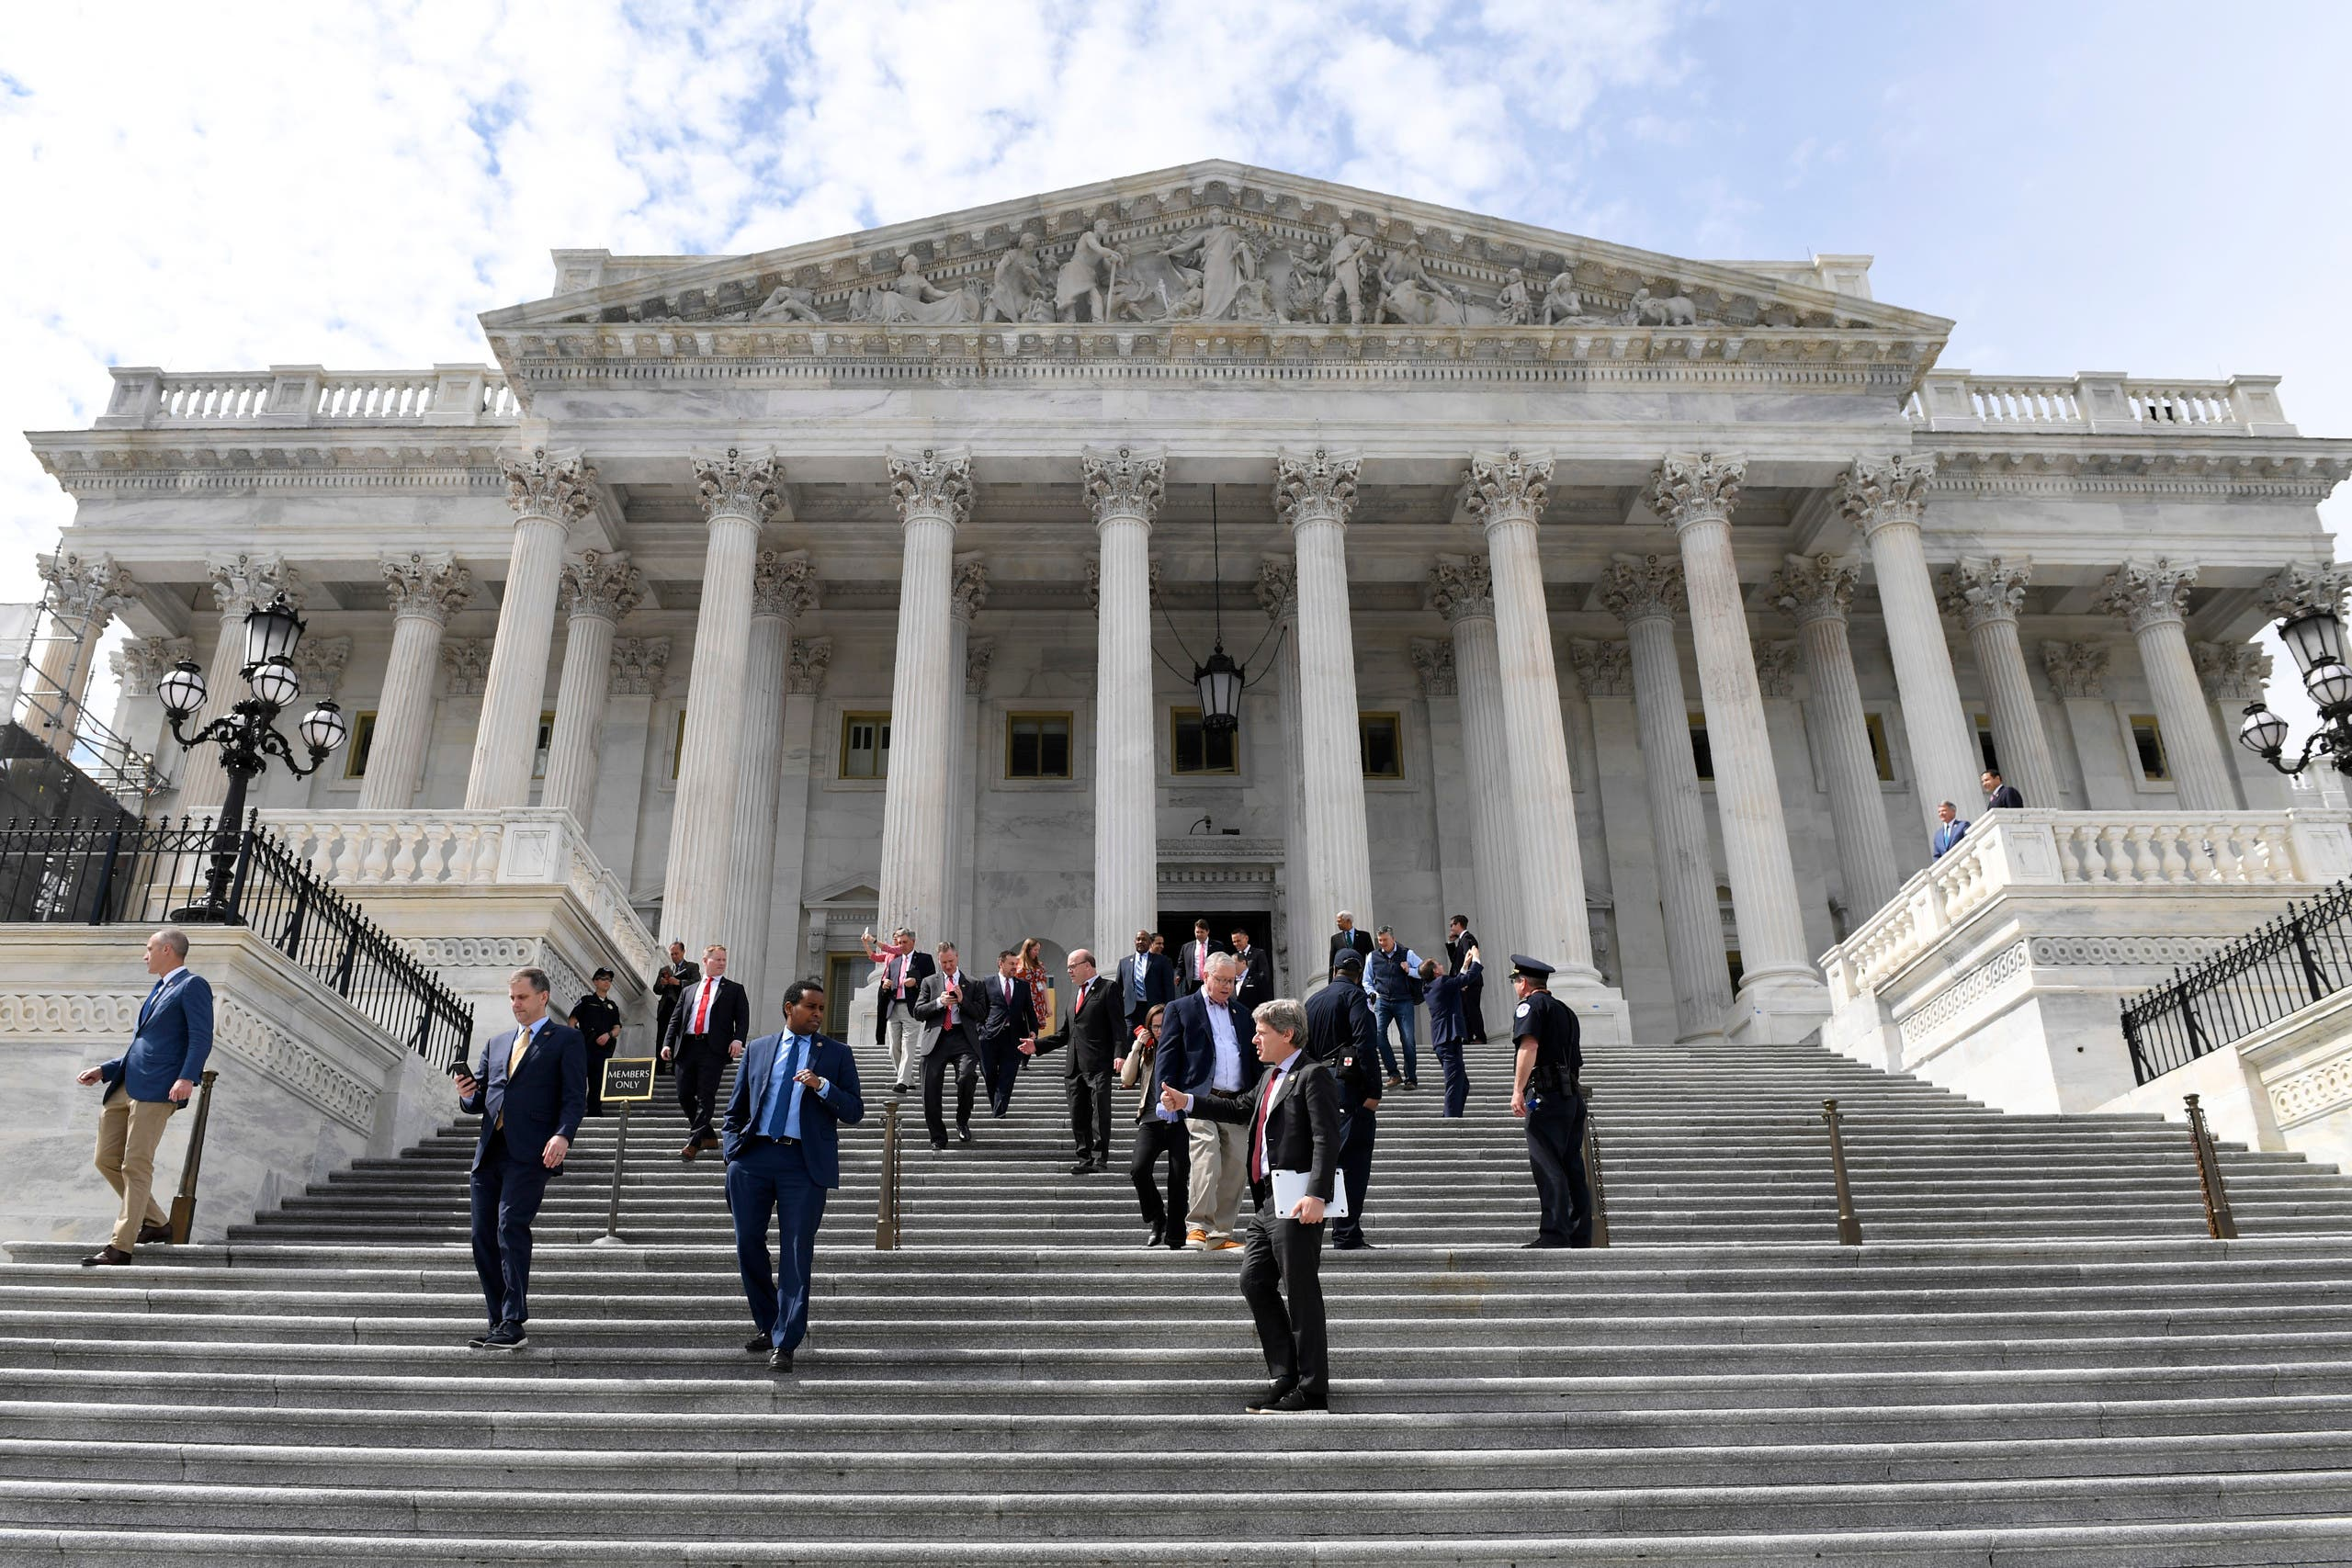 Members of the House of Representatives walk down the steps of Capitol Hill in Washington, on Friday, March 27, 2020, after passing a coronavirus rescue package. (AP)